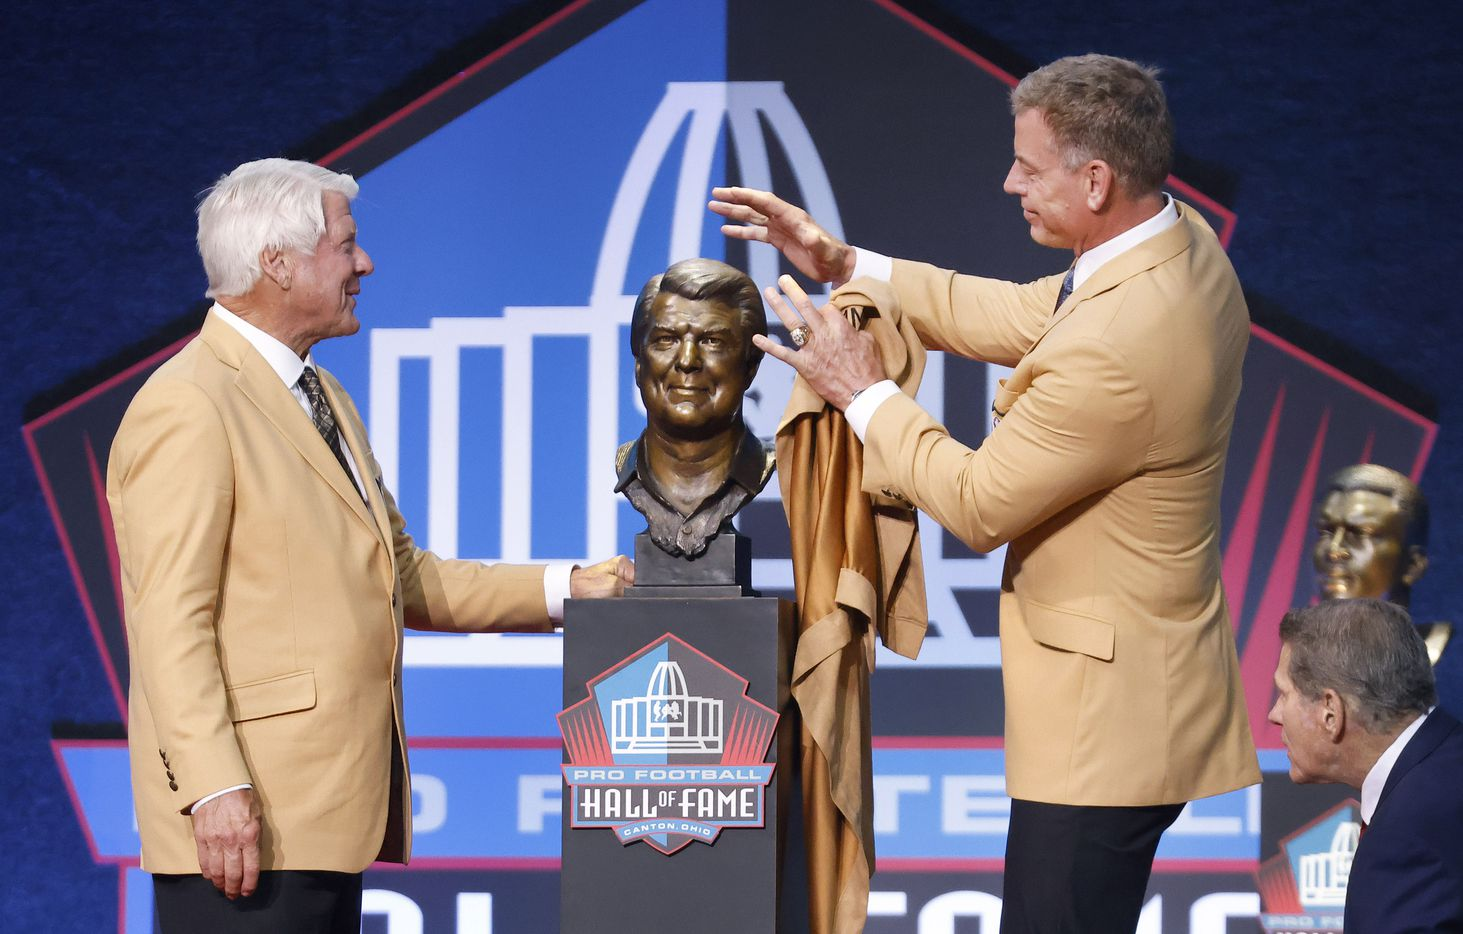 Presenter and former Dallas Cowboys Pro Football Hall of Fame quarterback Troy Aikman teasingly attempts to mess up inductee Jimmy Johnson's bronze hair following the bust reveal during the Centennial Class of 2020 enshrinement ceremony at Tom Benson Hall of Fame Stadium in Canton, Ohio, Saturday, August 7, 2021. (Tom Fox/The Dallas Morning News)